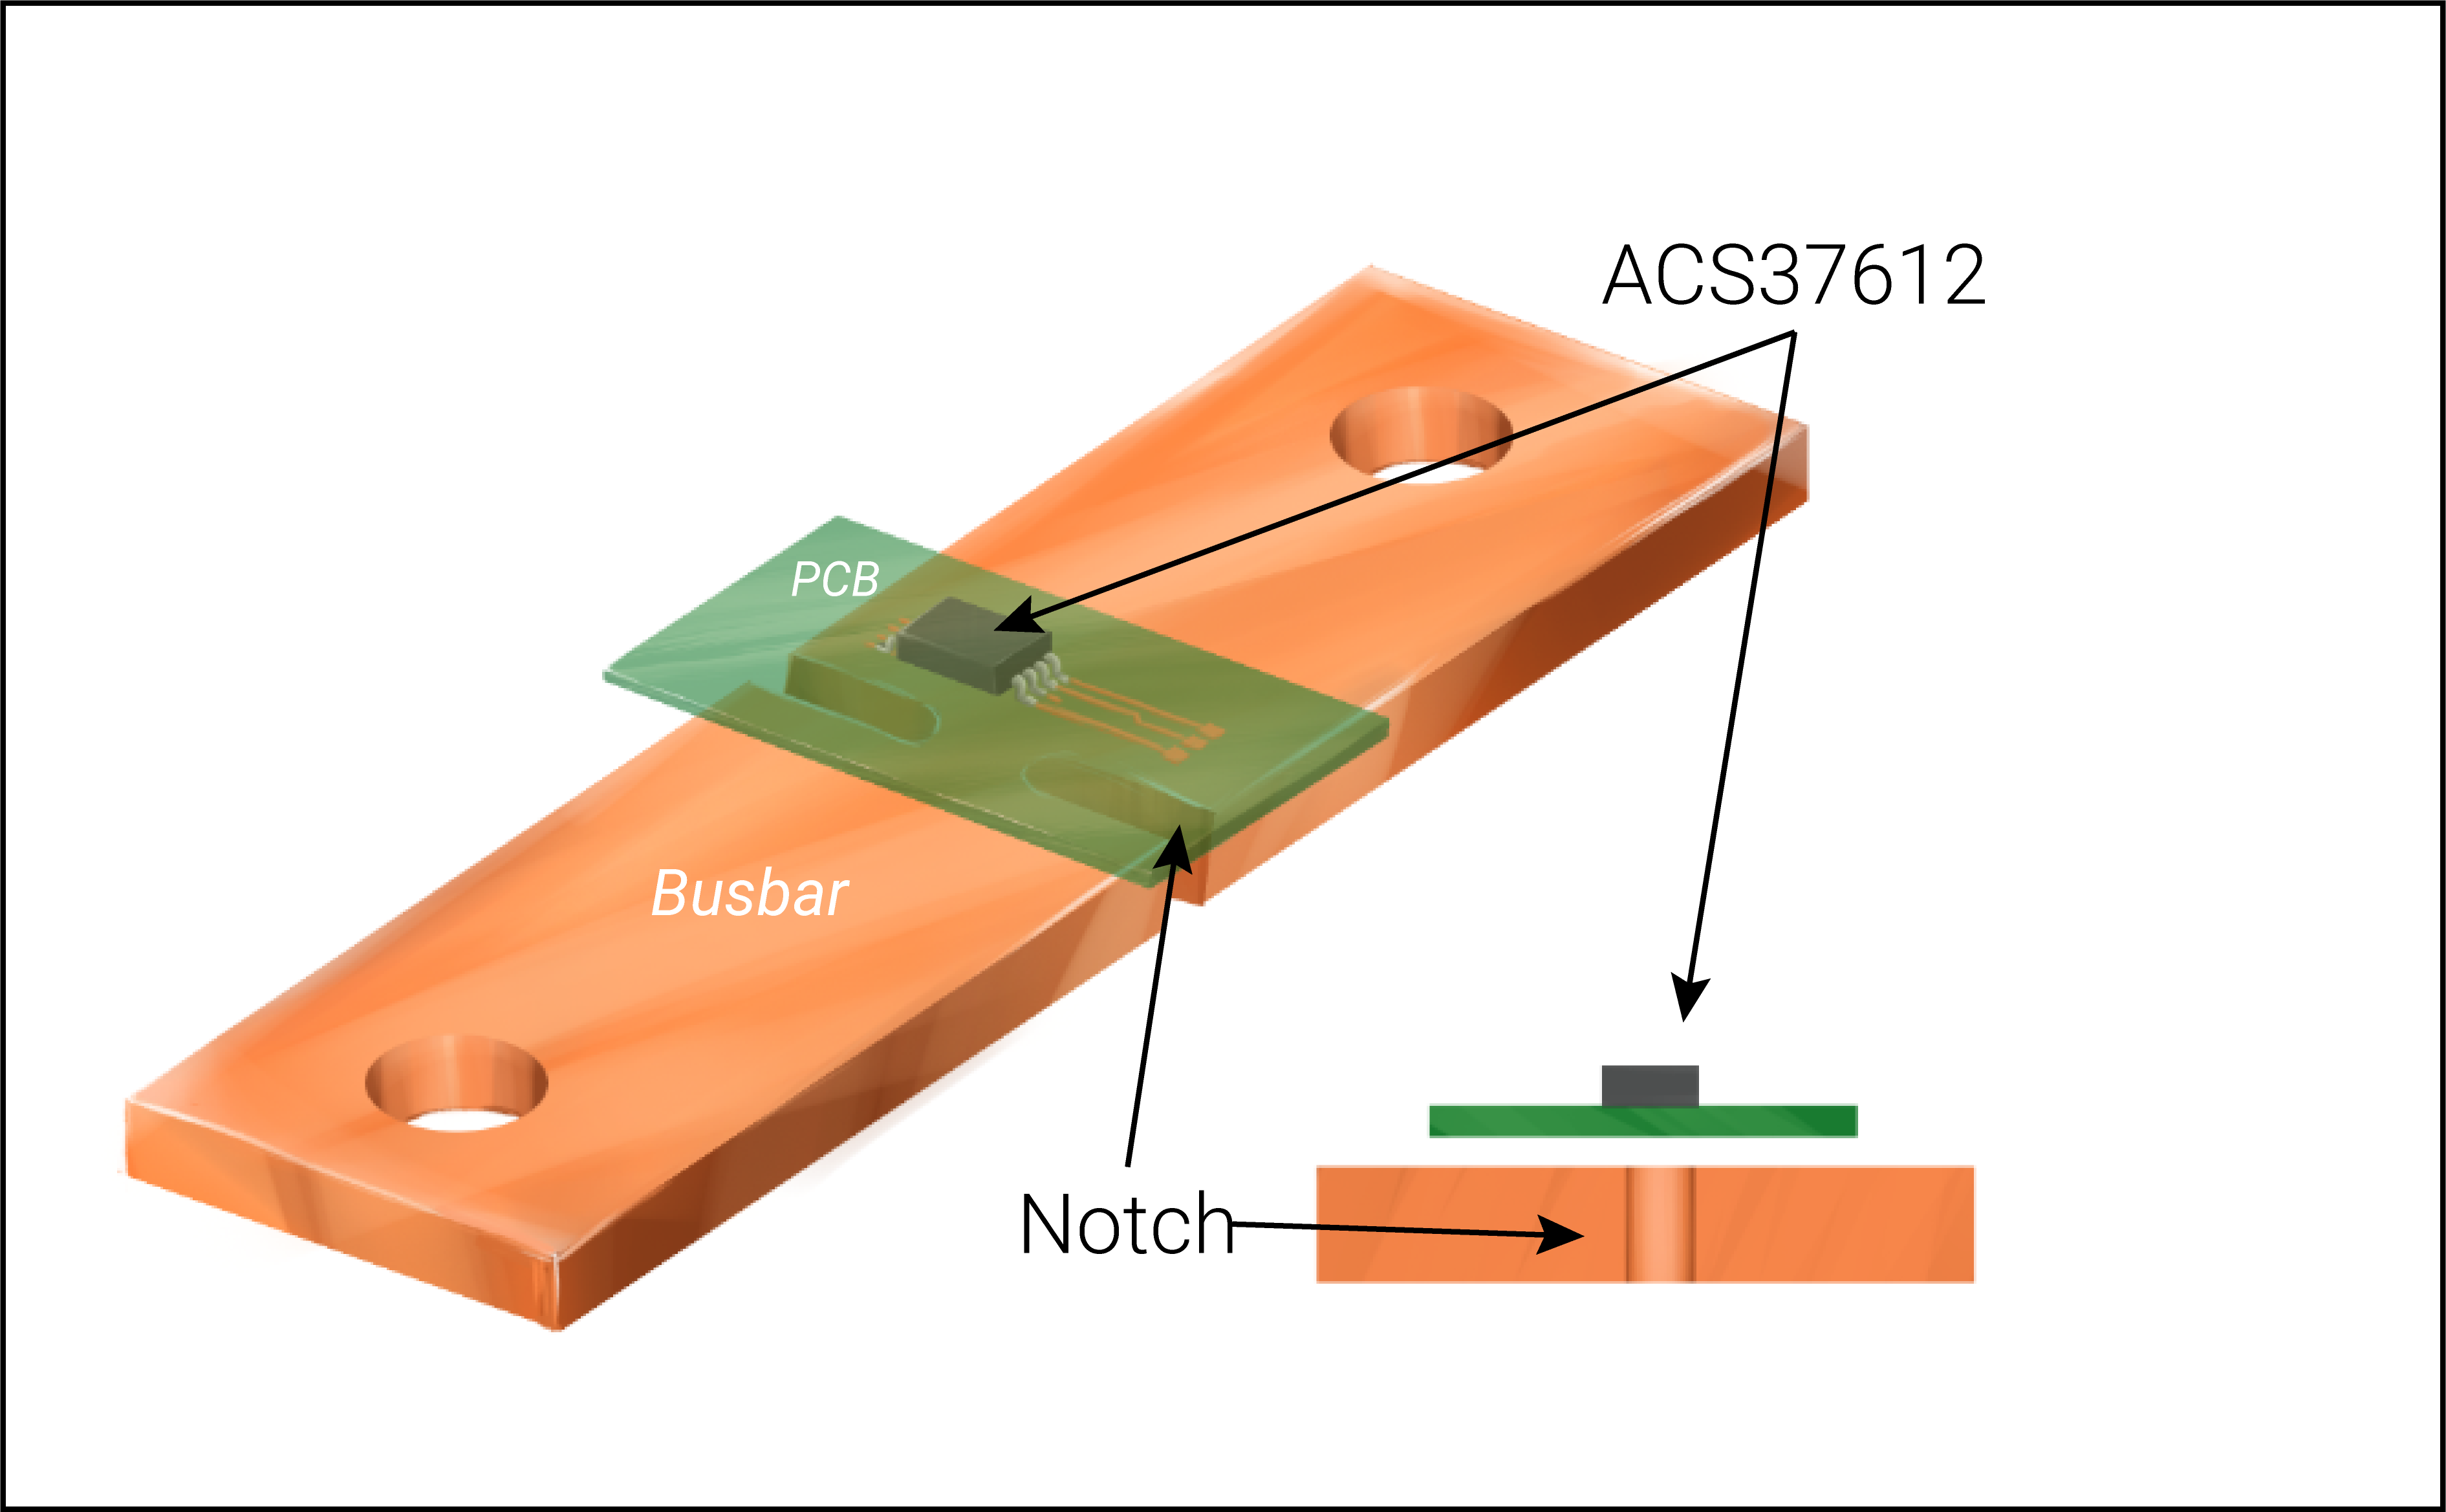 Increased trace current capacity in PCB using Bus Bar